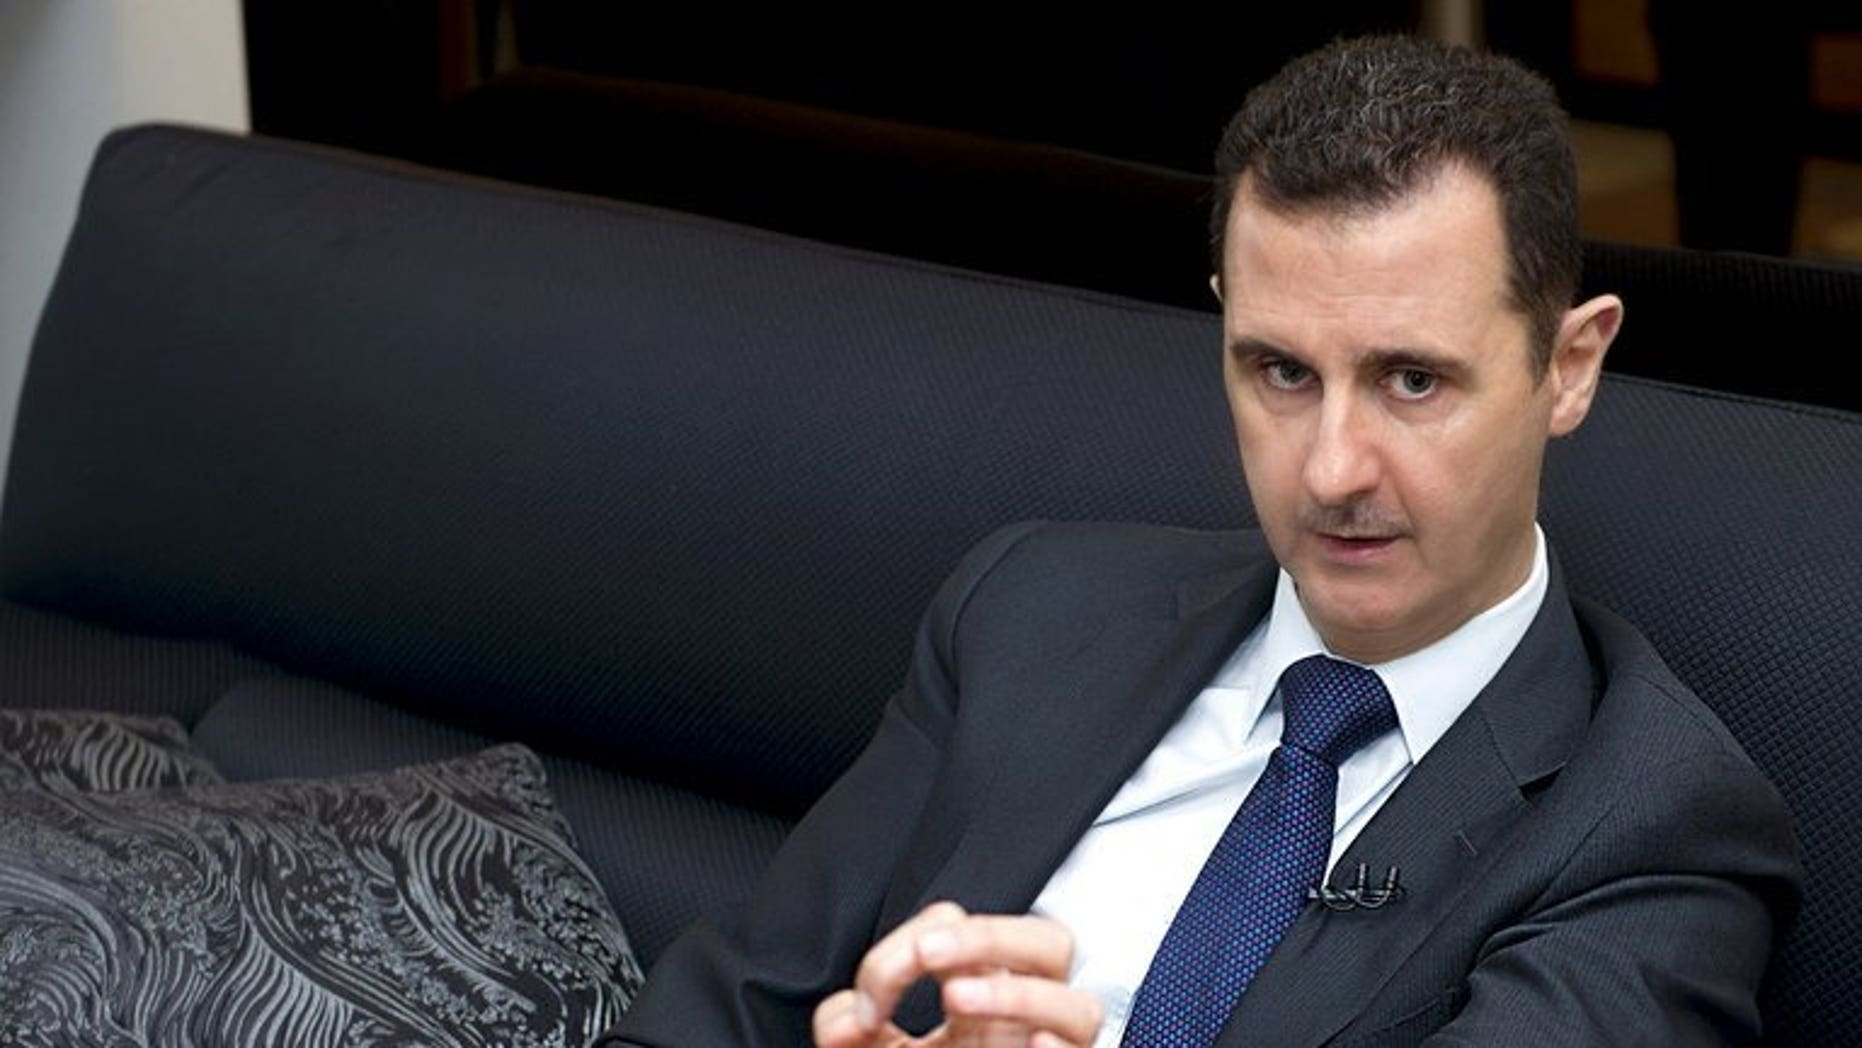 A handout picture released by the Syrian Arab News Agency (SANA) on June 17, 2013, shows Syrian President Bashar al-Assad speaking during an interview with the Frankfurter Allgemeine Zeitung newspaper in Damascus. Assad has ordered a pay rise for all military and civil service personnel, as his regime sought to give its loyalists some protection against soaring inflation.